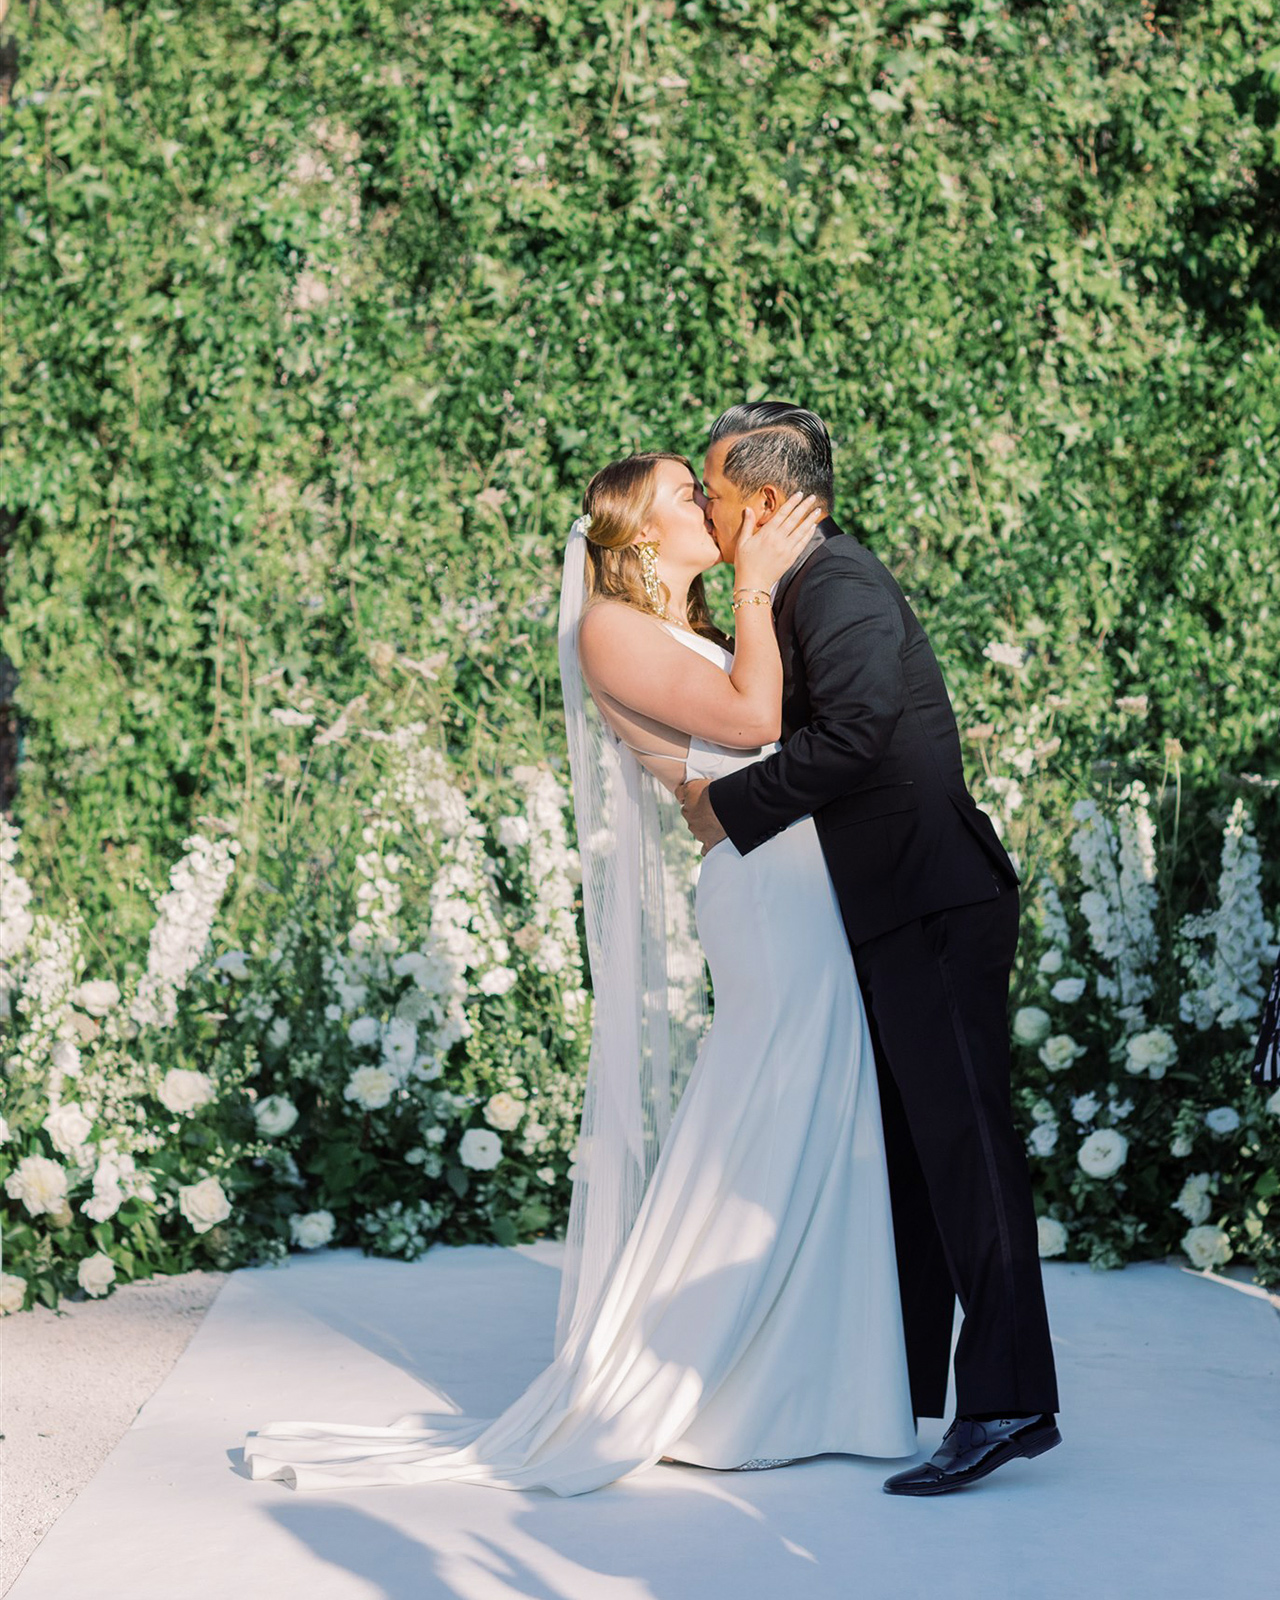 bride groom kiss outdoor wedding space white flower backdrop